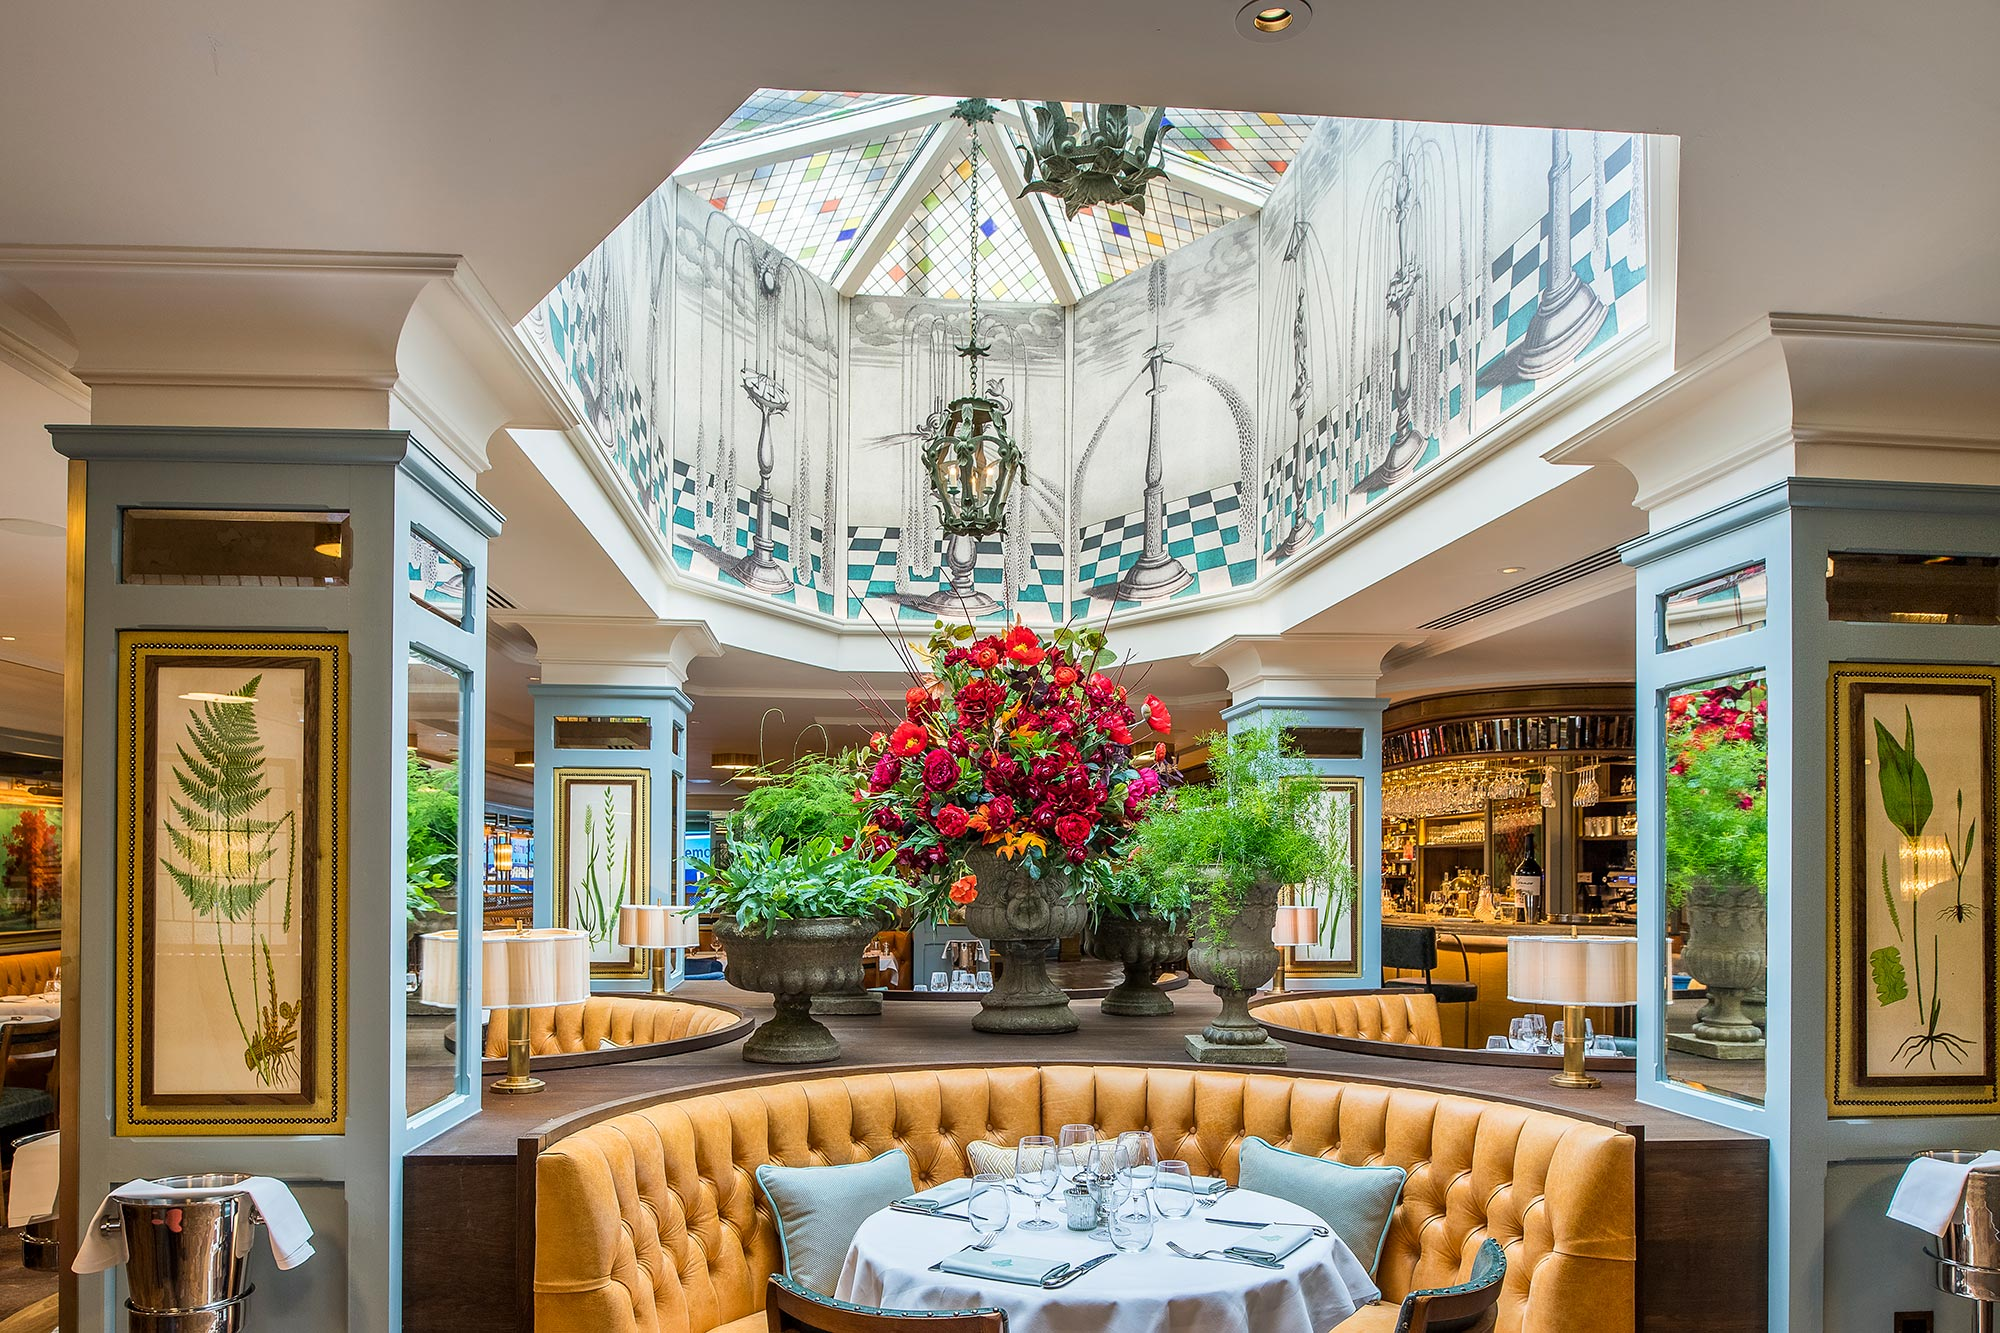 Eating out in Harrogate - The Ivy Harrogate - The Ivy Harrogate